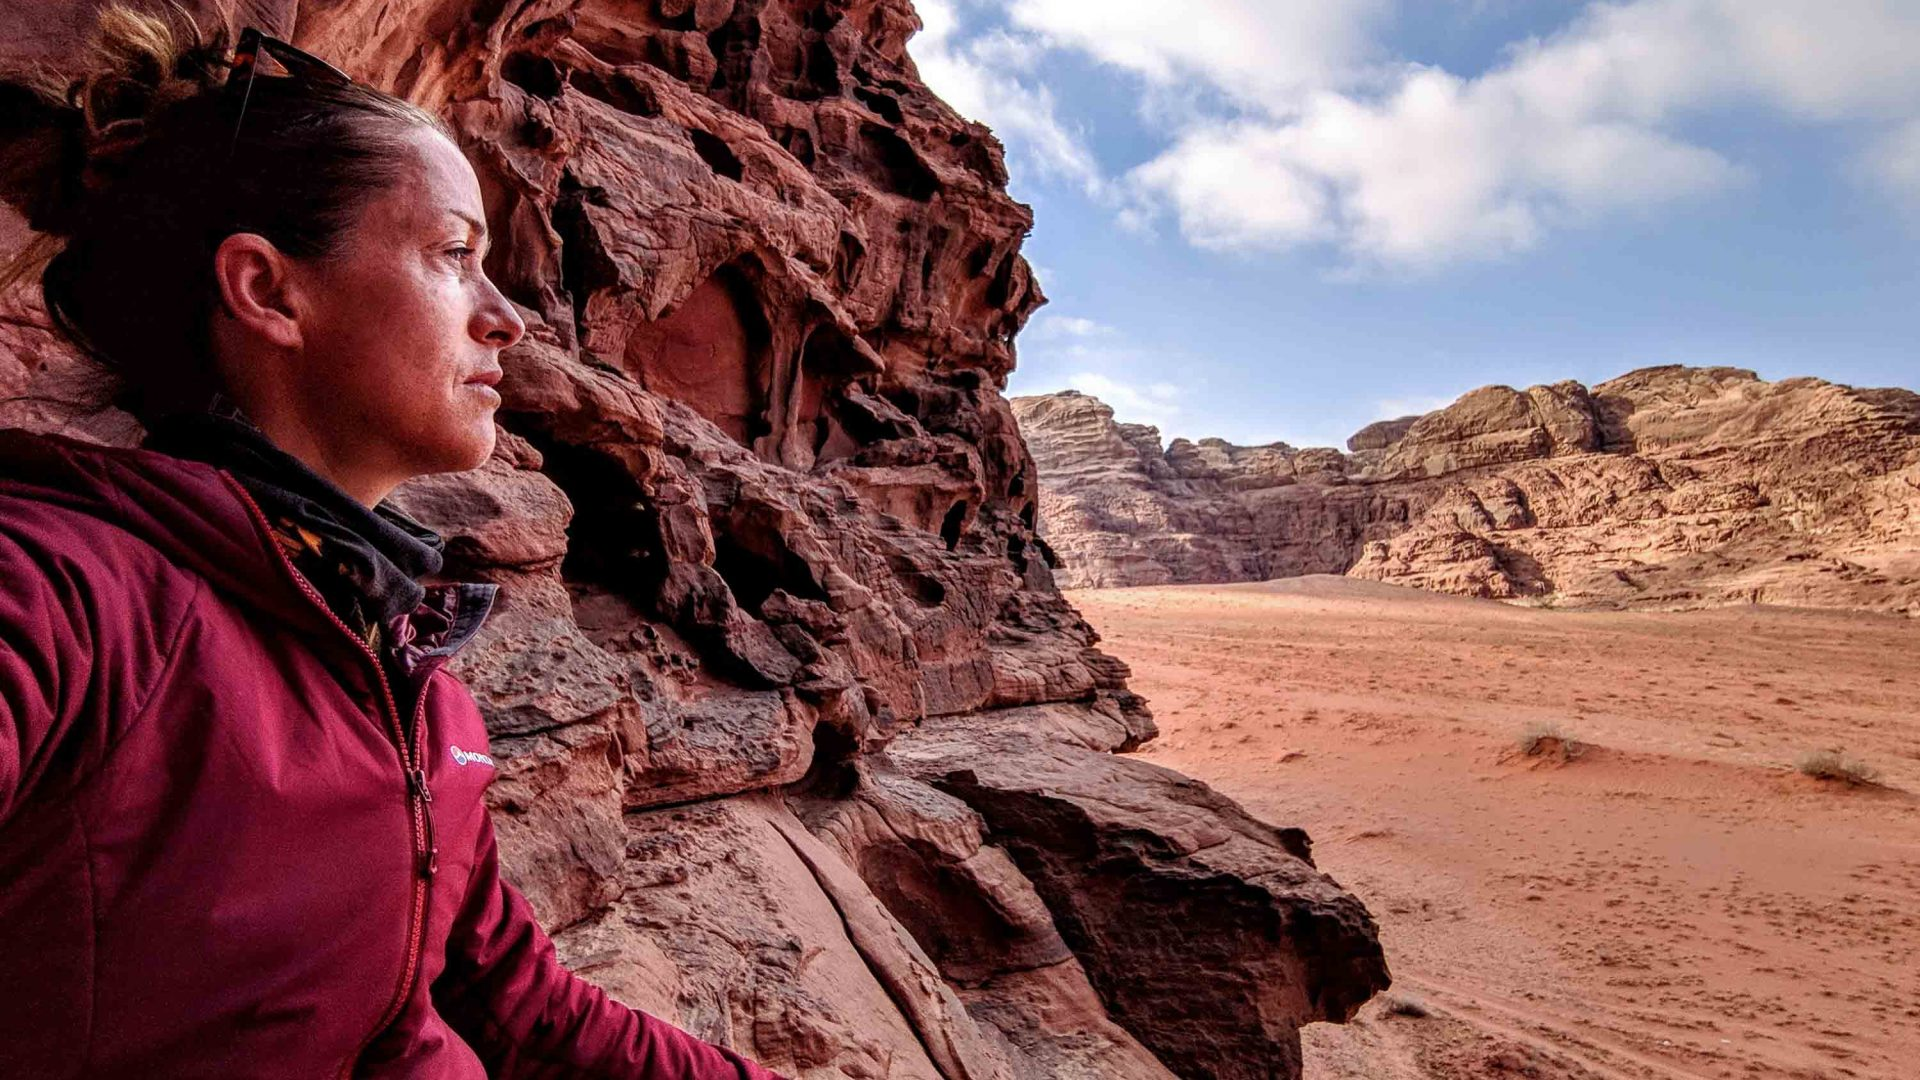 Writer Antonia looks out at the incredible desert views beneath her during her climb in Wadi Rum.